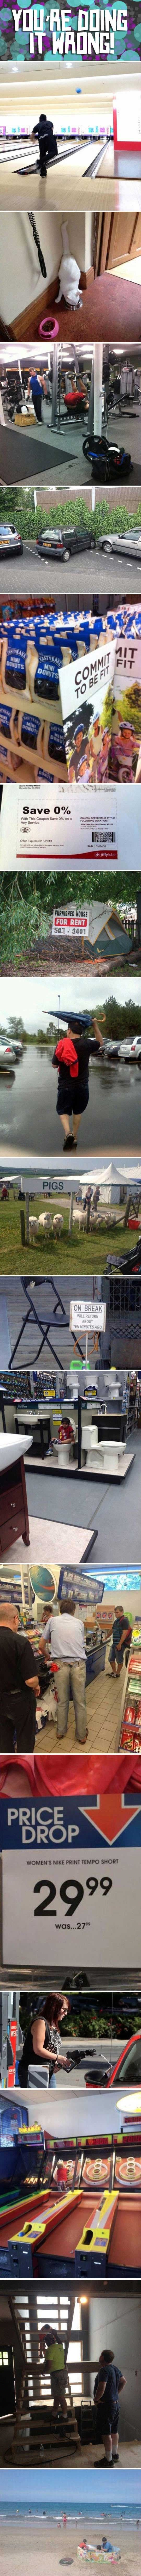 You're doing it wrong compilation… - One Stop Humor: Funny Pictures and Videos! Some of these are just foolish! lol.